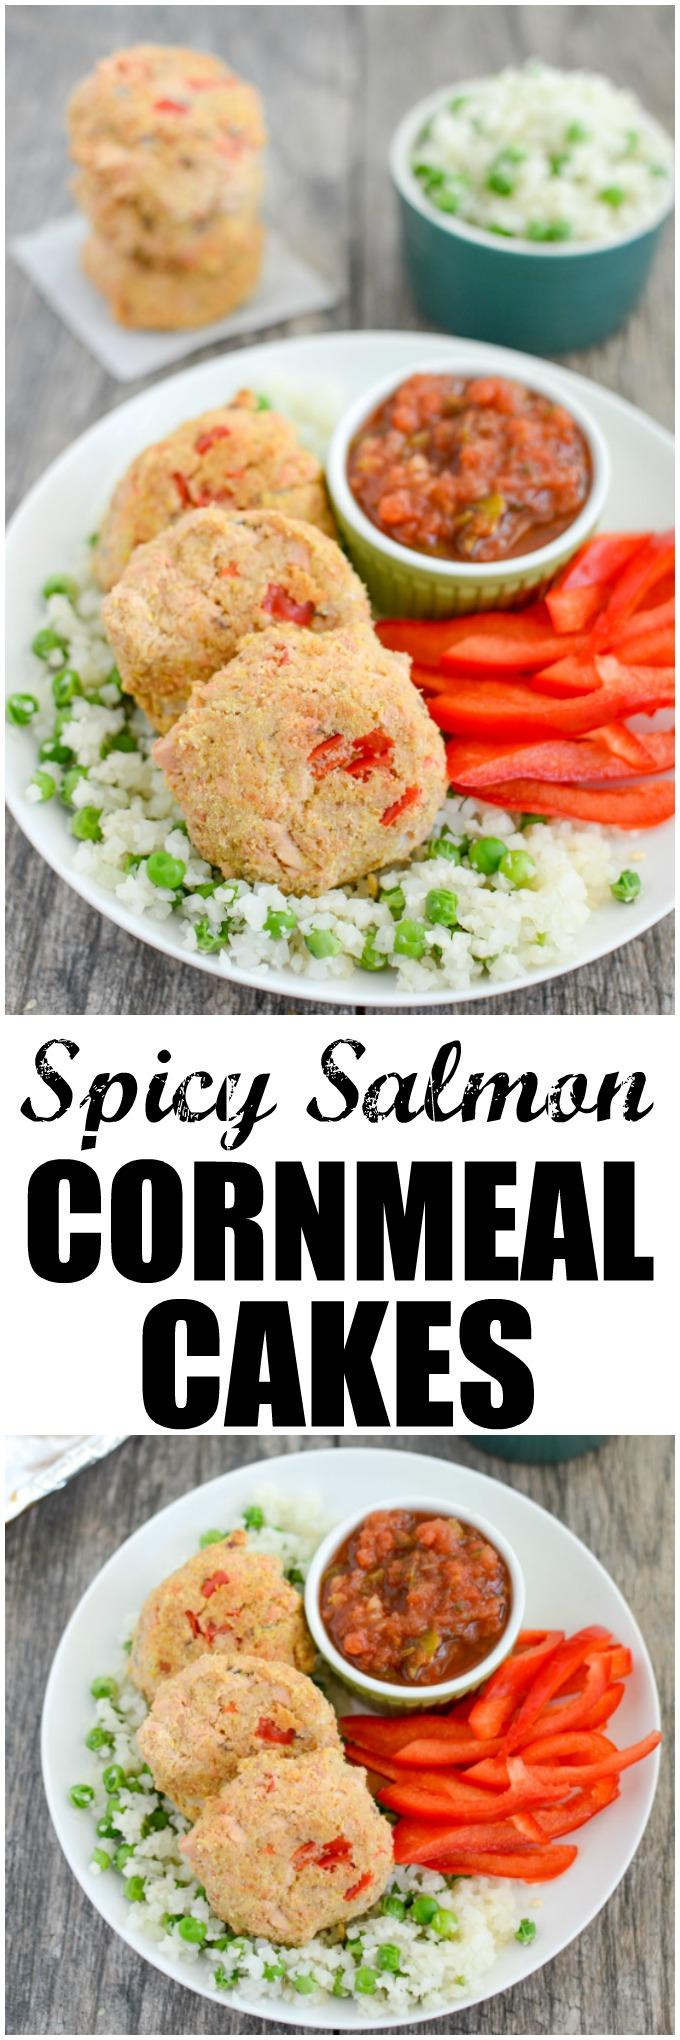 These Spicy Salmon Cornmeal Cakes are made with just a few simple ingredients and are great for a quick, healthy dinner. Enjoy the leftovers over a salad for lunch!